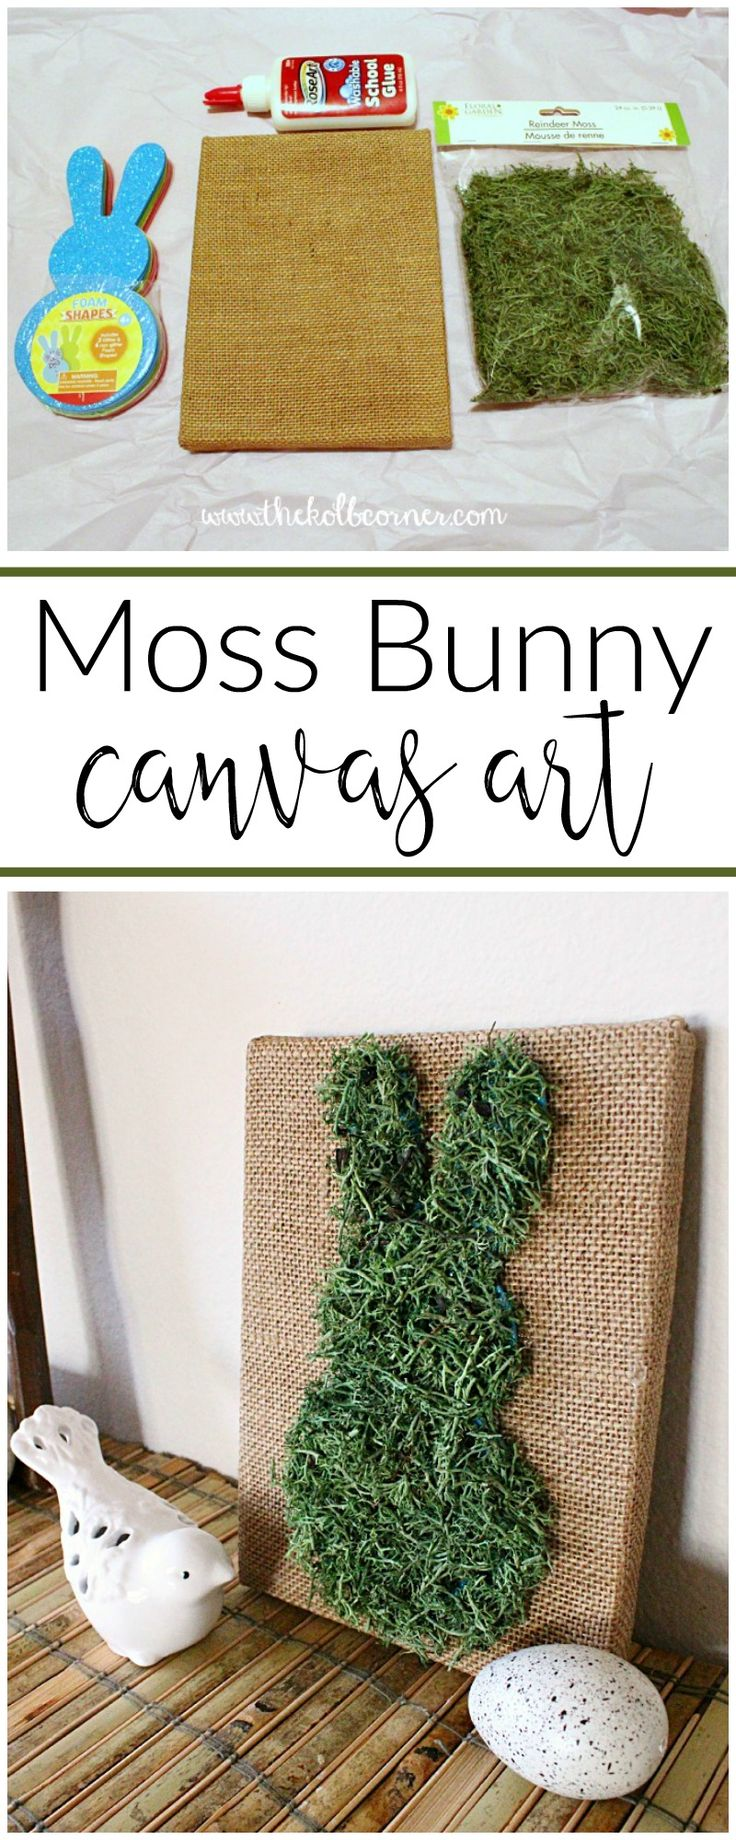 Add some pretty and inexpensive Spring decor to your home this year with this easy moss covered bunny canvas art tutorial.